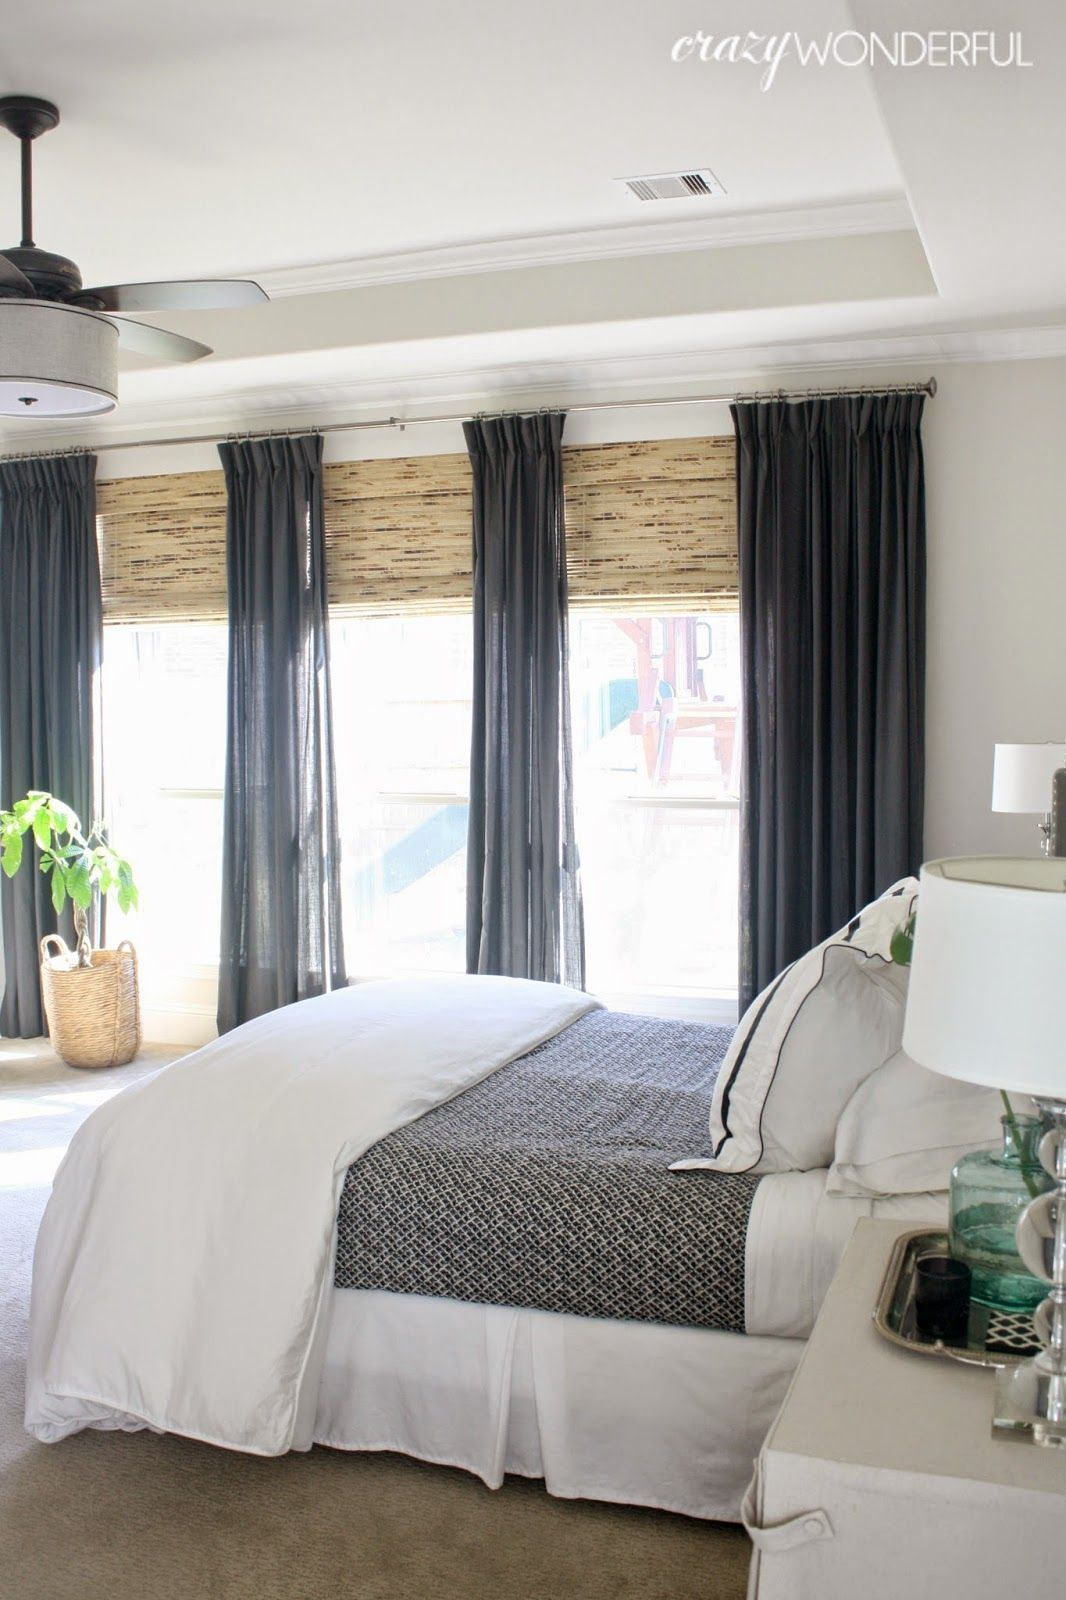 Master bedroom curtains - Embrace The Wonders Of Natural Light In Your Bedroom With Floor To Ceiling Windows